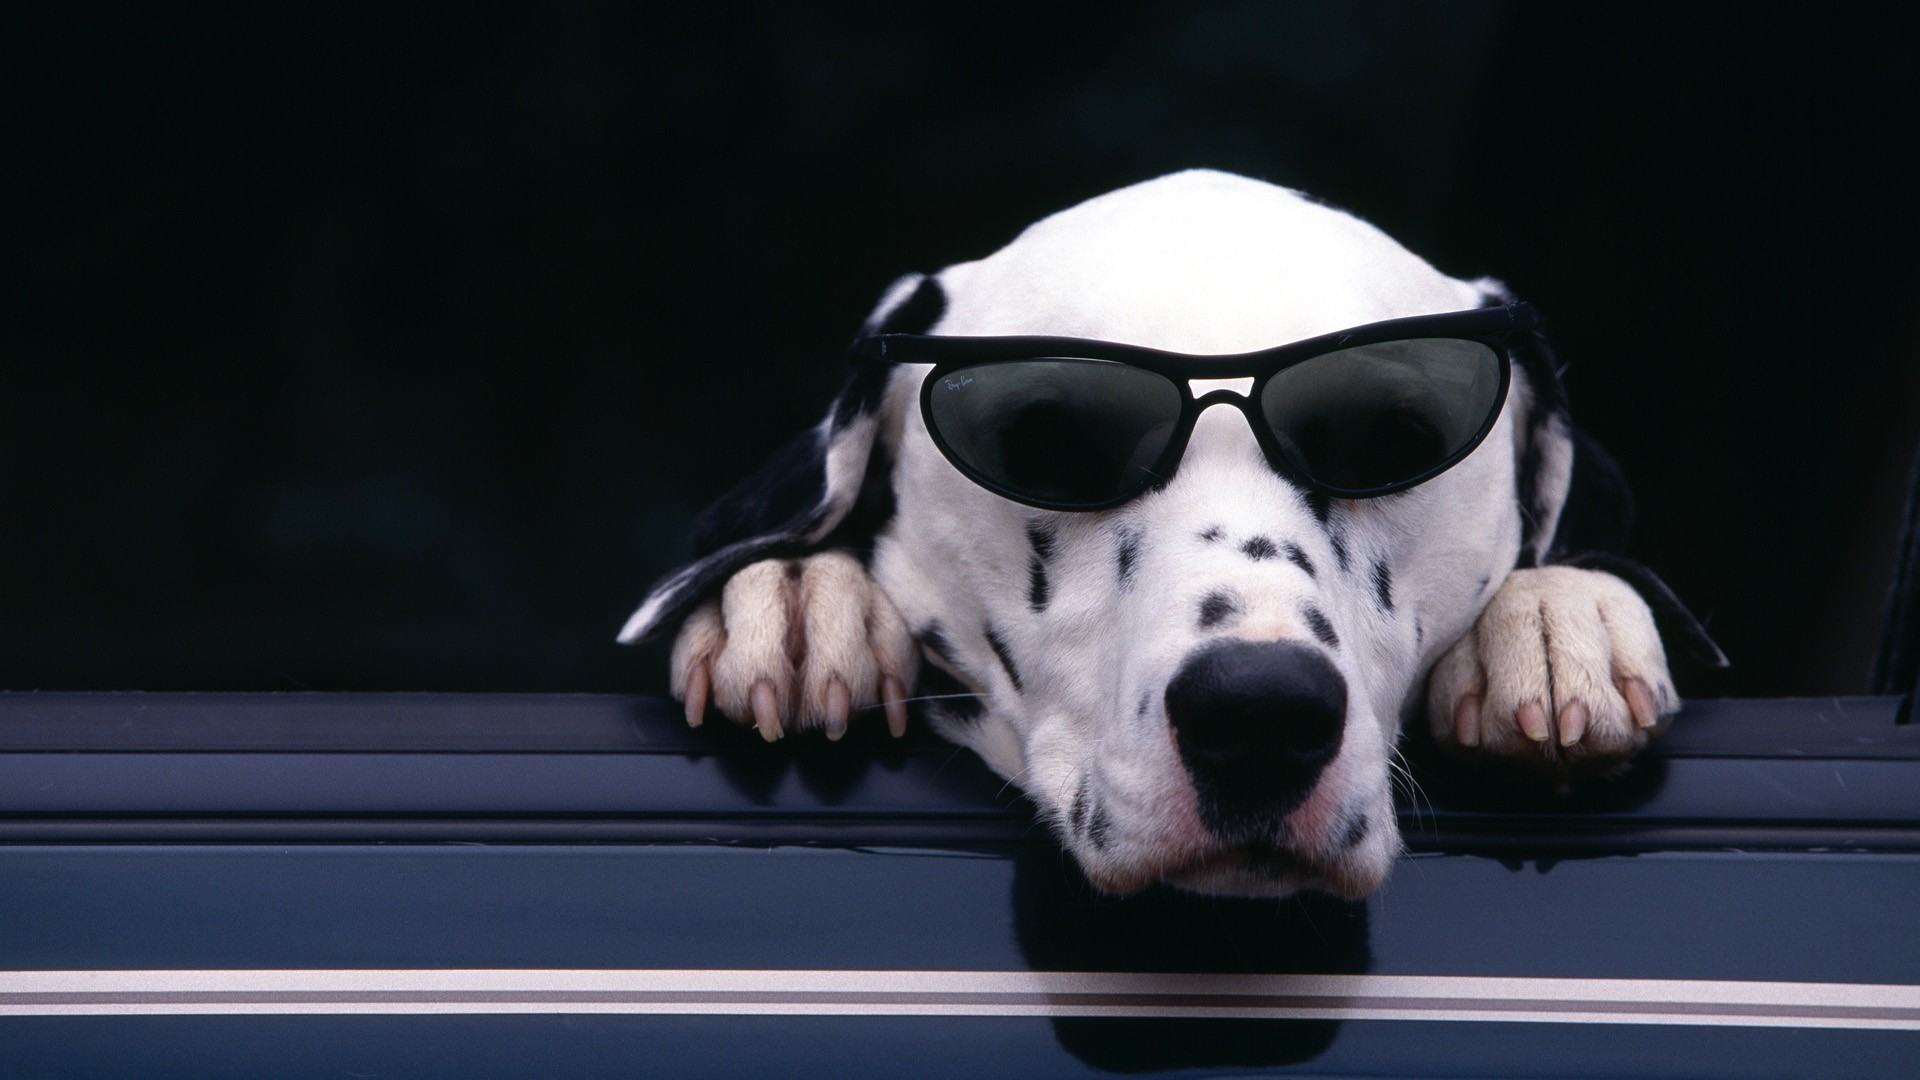 9 Sings Your Dalmata Thinks He's Boss